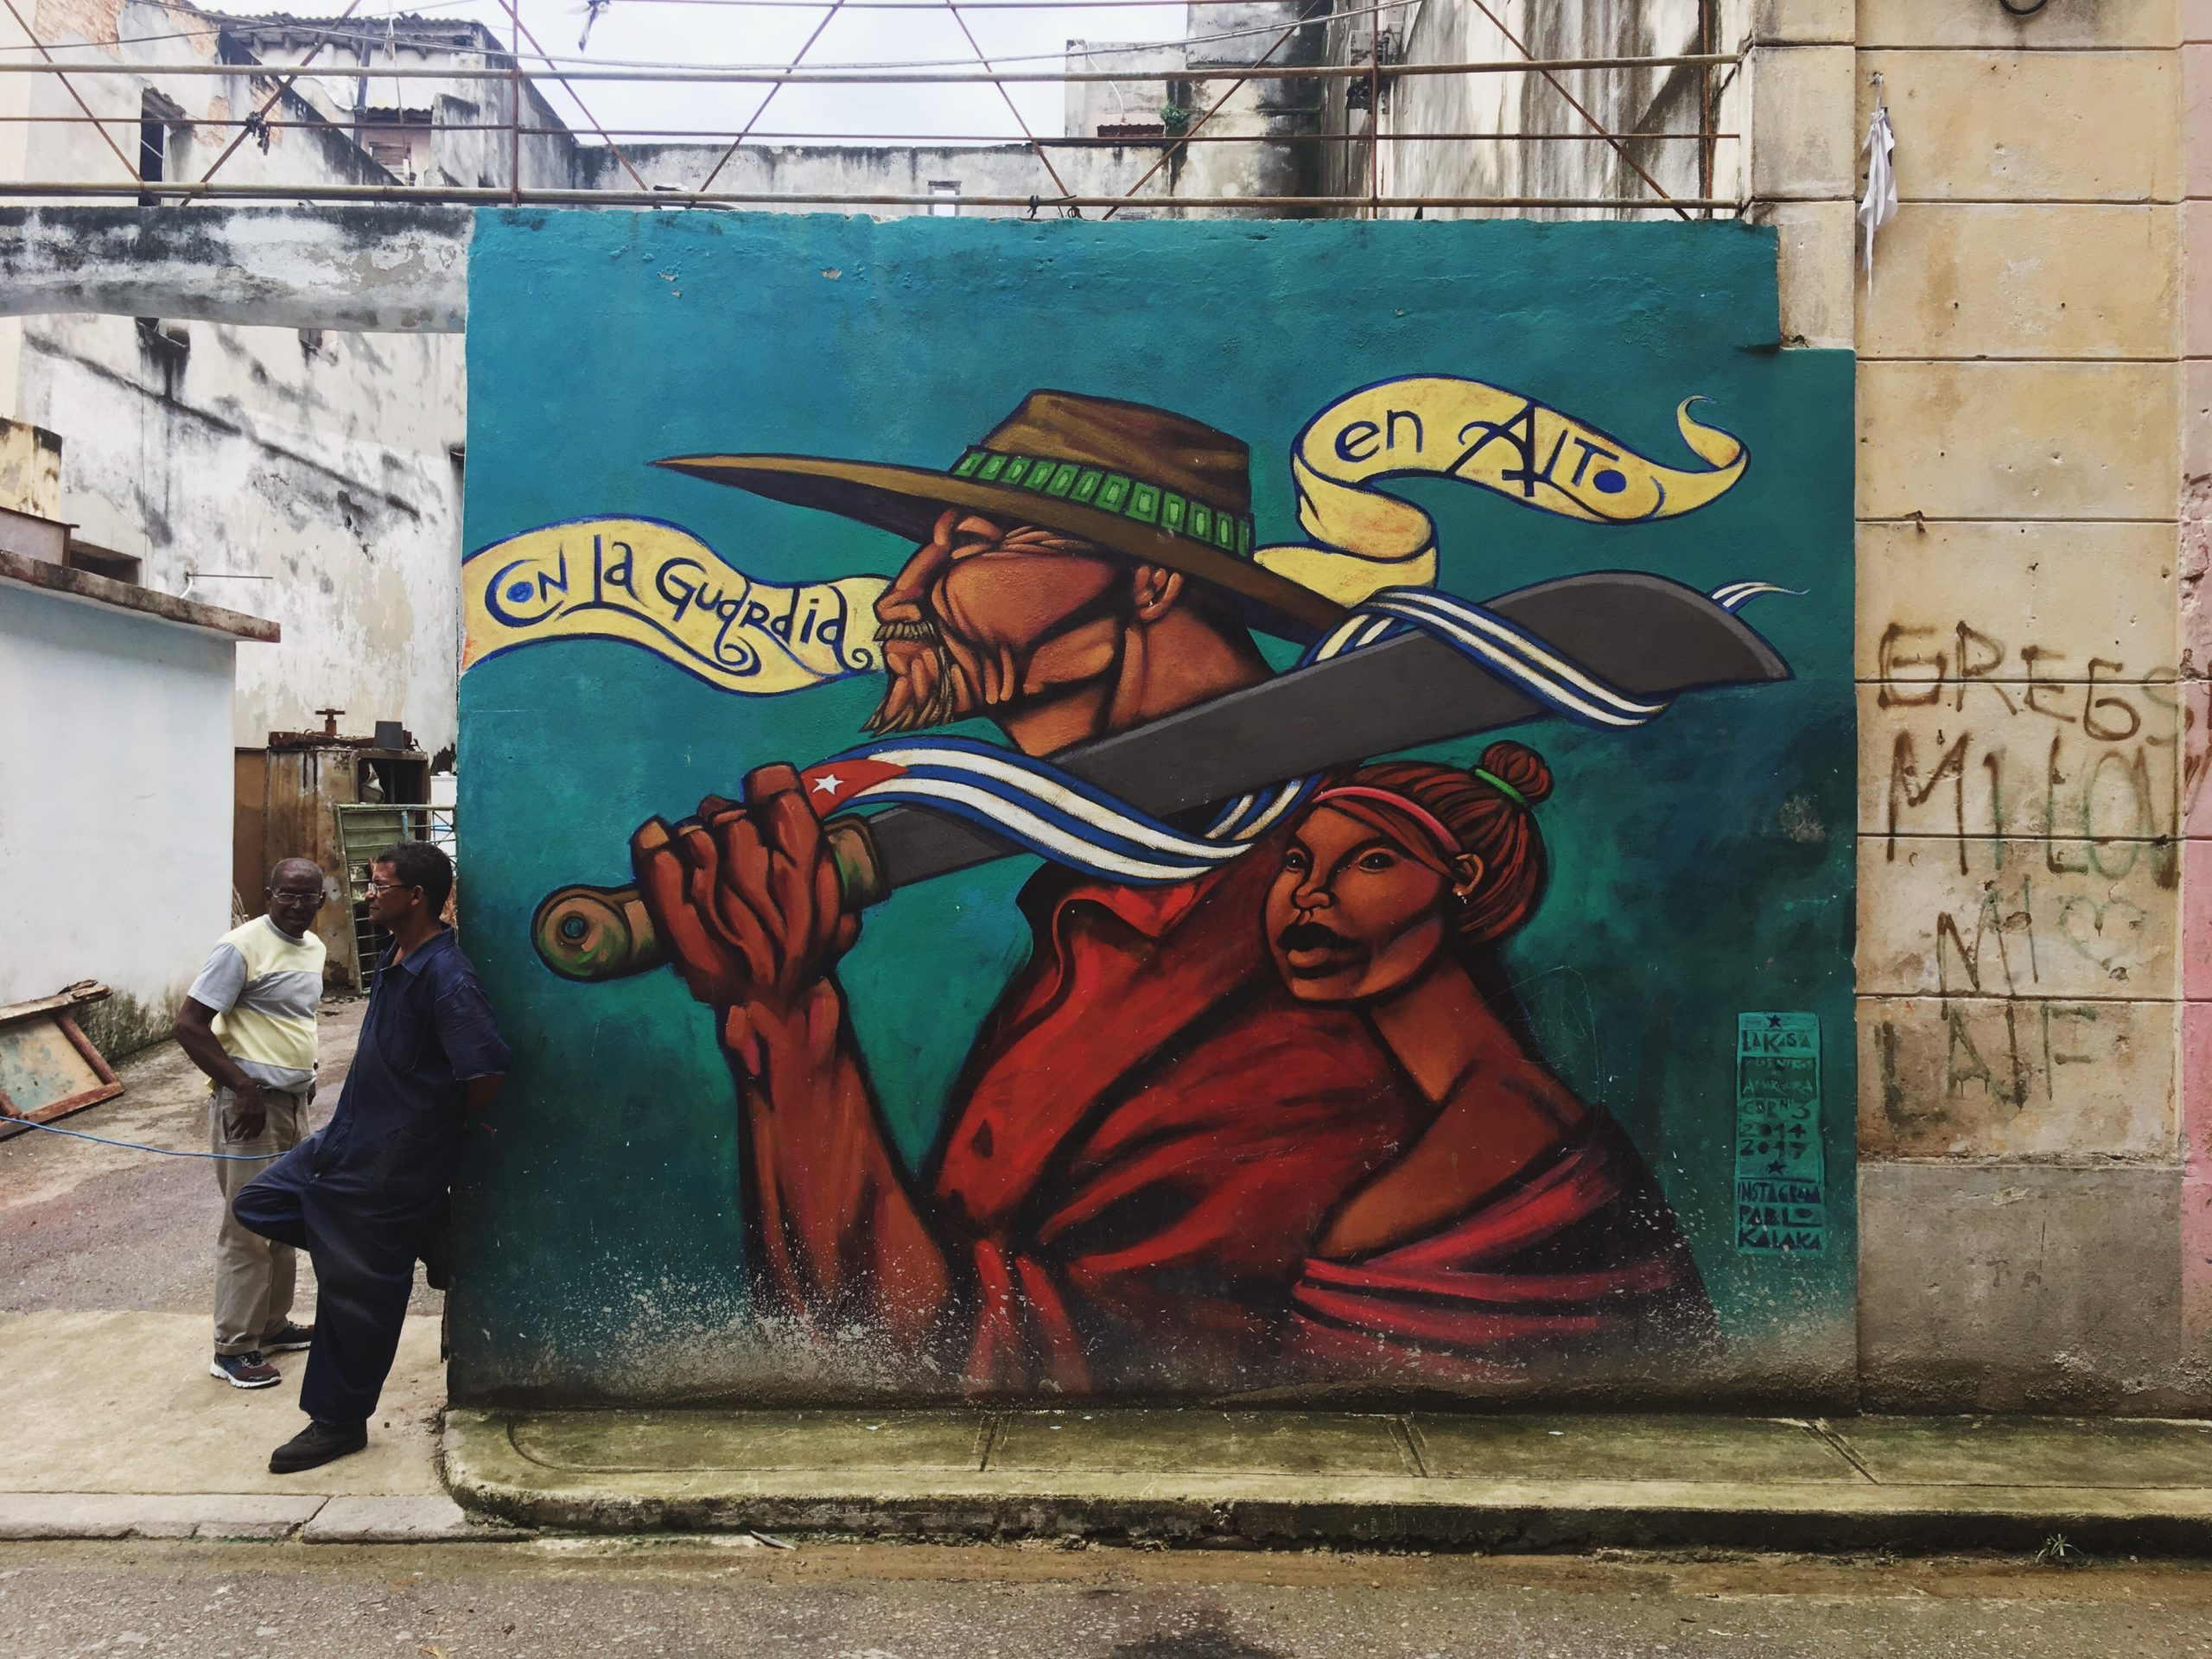 Traveling off the beaten path in Cuba